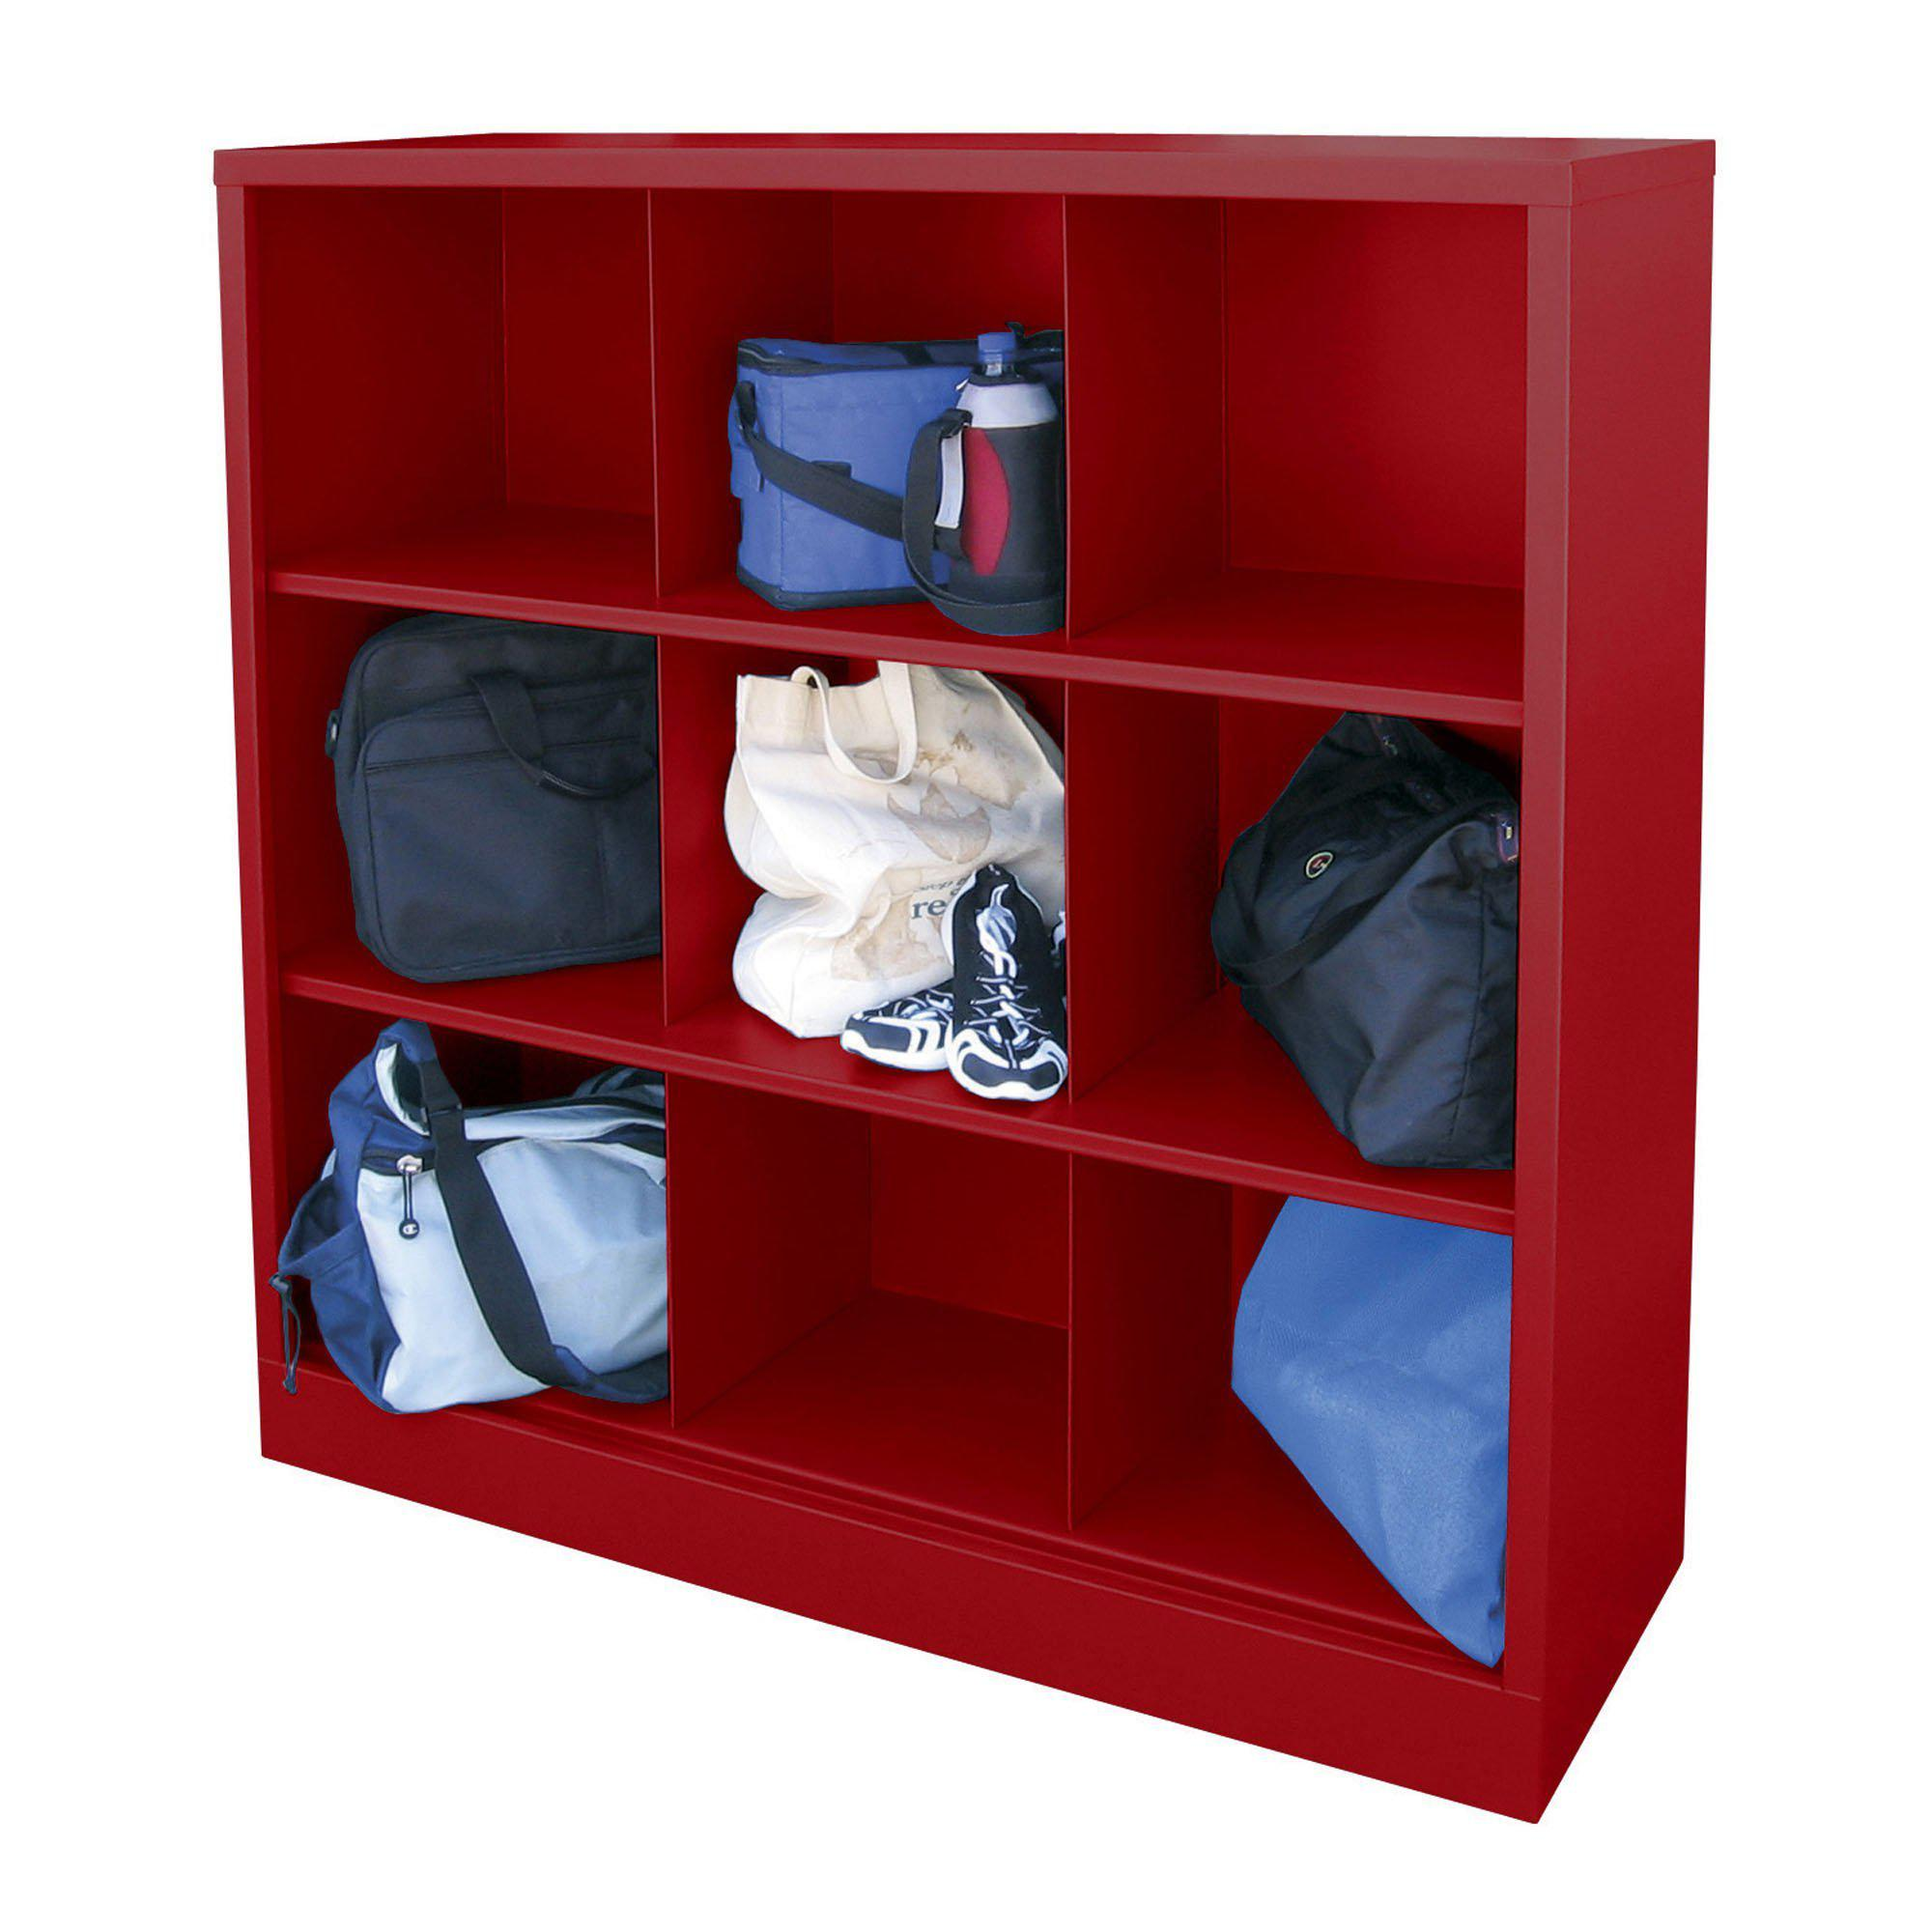 Cubby Storage Organizer, 9 Sections, 46 x 18 x 52, Red